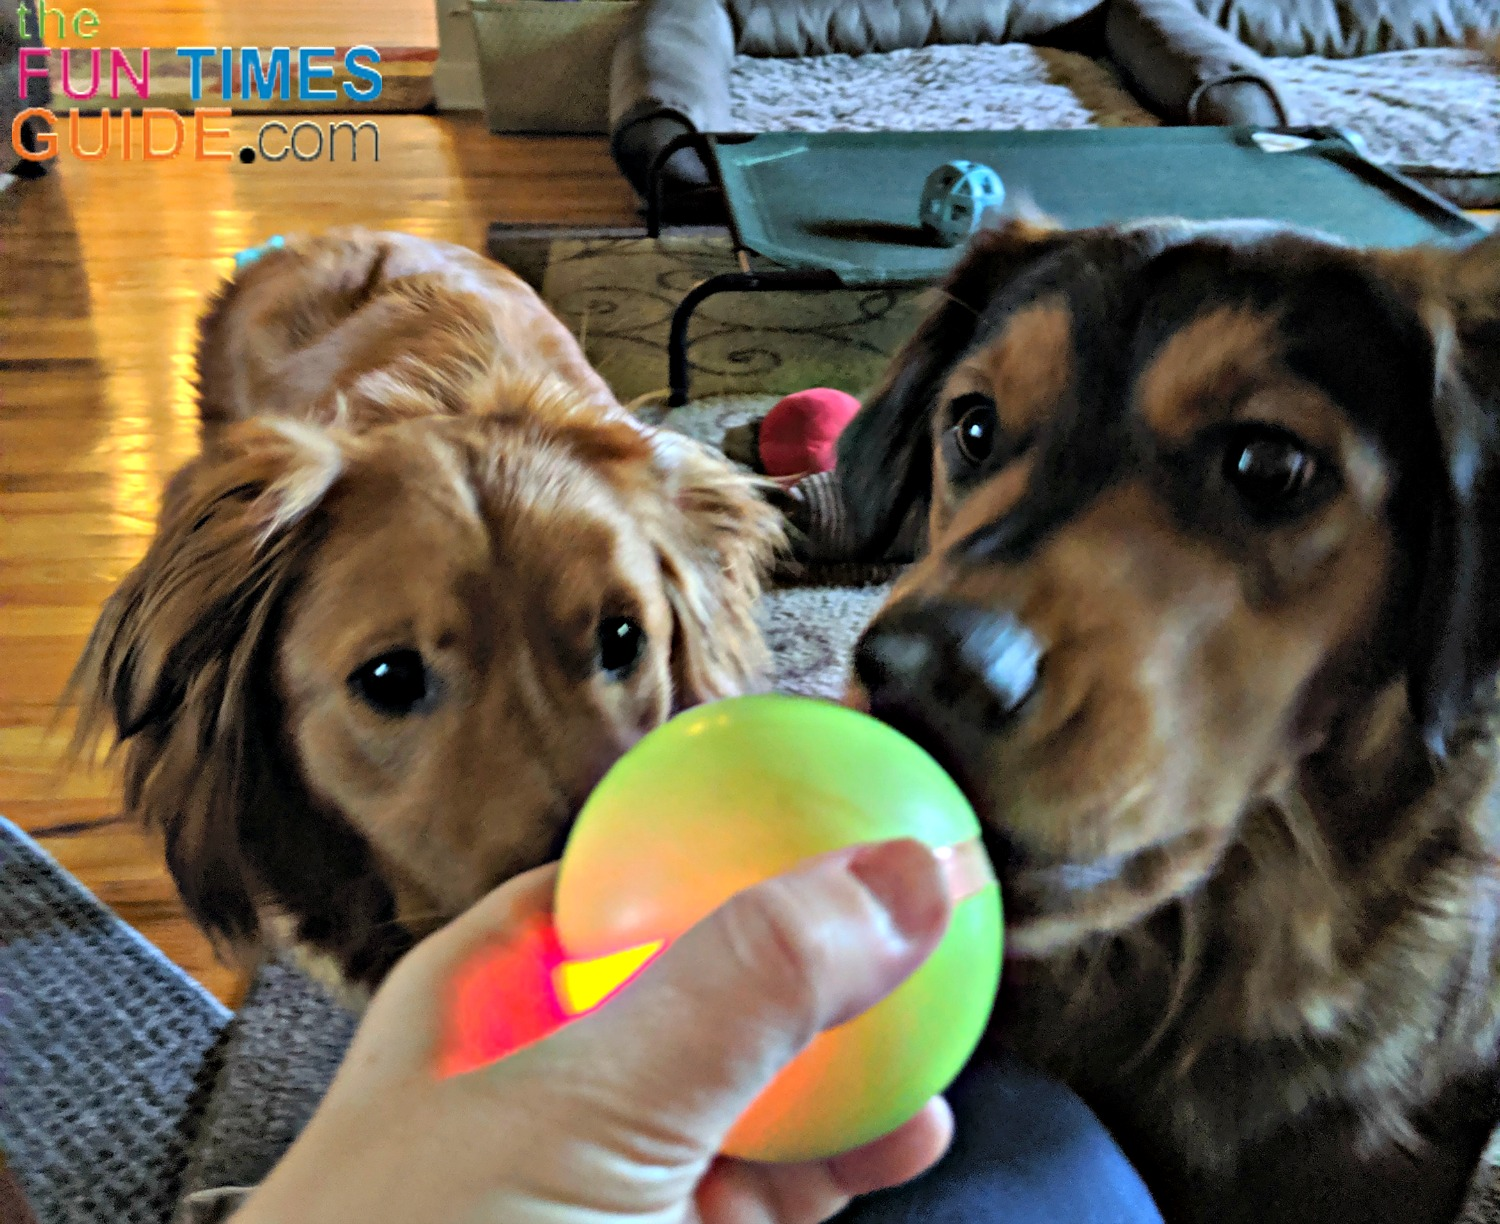 From the first day I gave my dogs the Wicked Ball, this is how they act every time I take the ball out of the drawer for them to play with it... they can't wait!